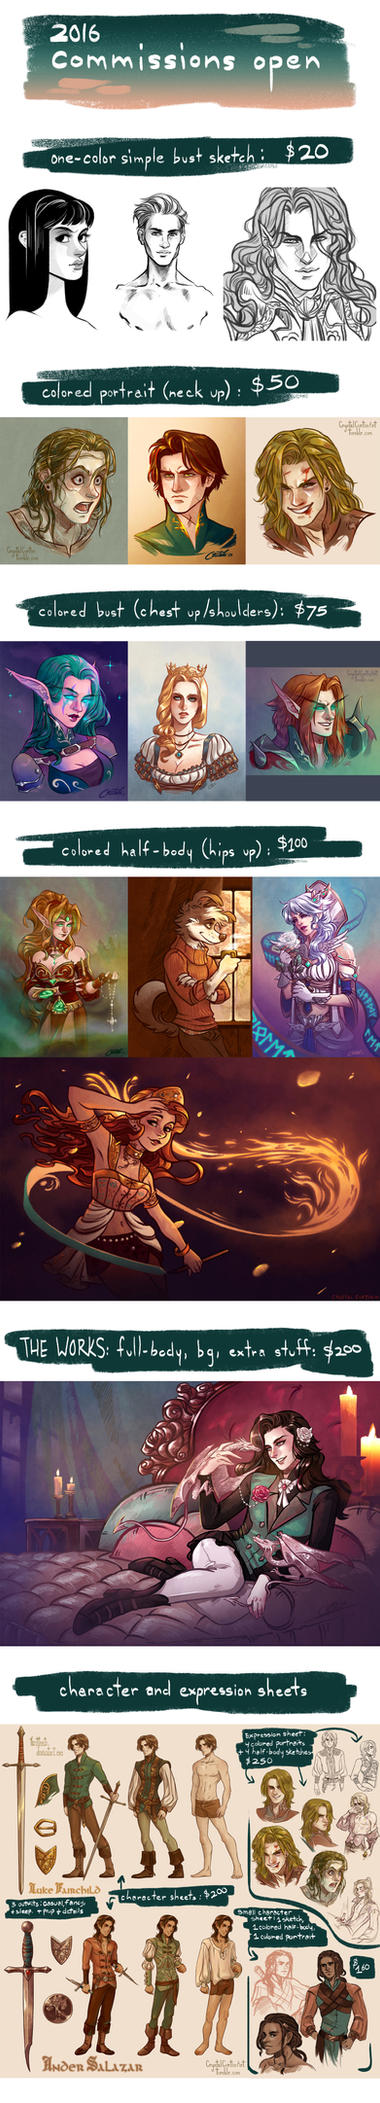 COMMISSIONS OPEN! - 2016 (4 slots left) by CrystalCurtisArt